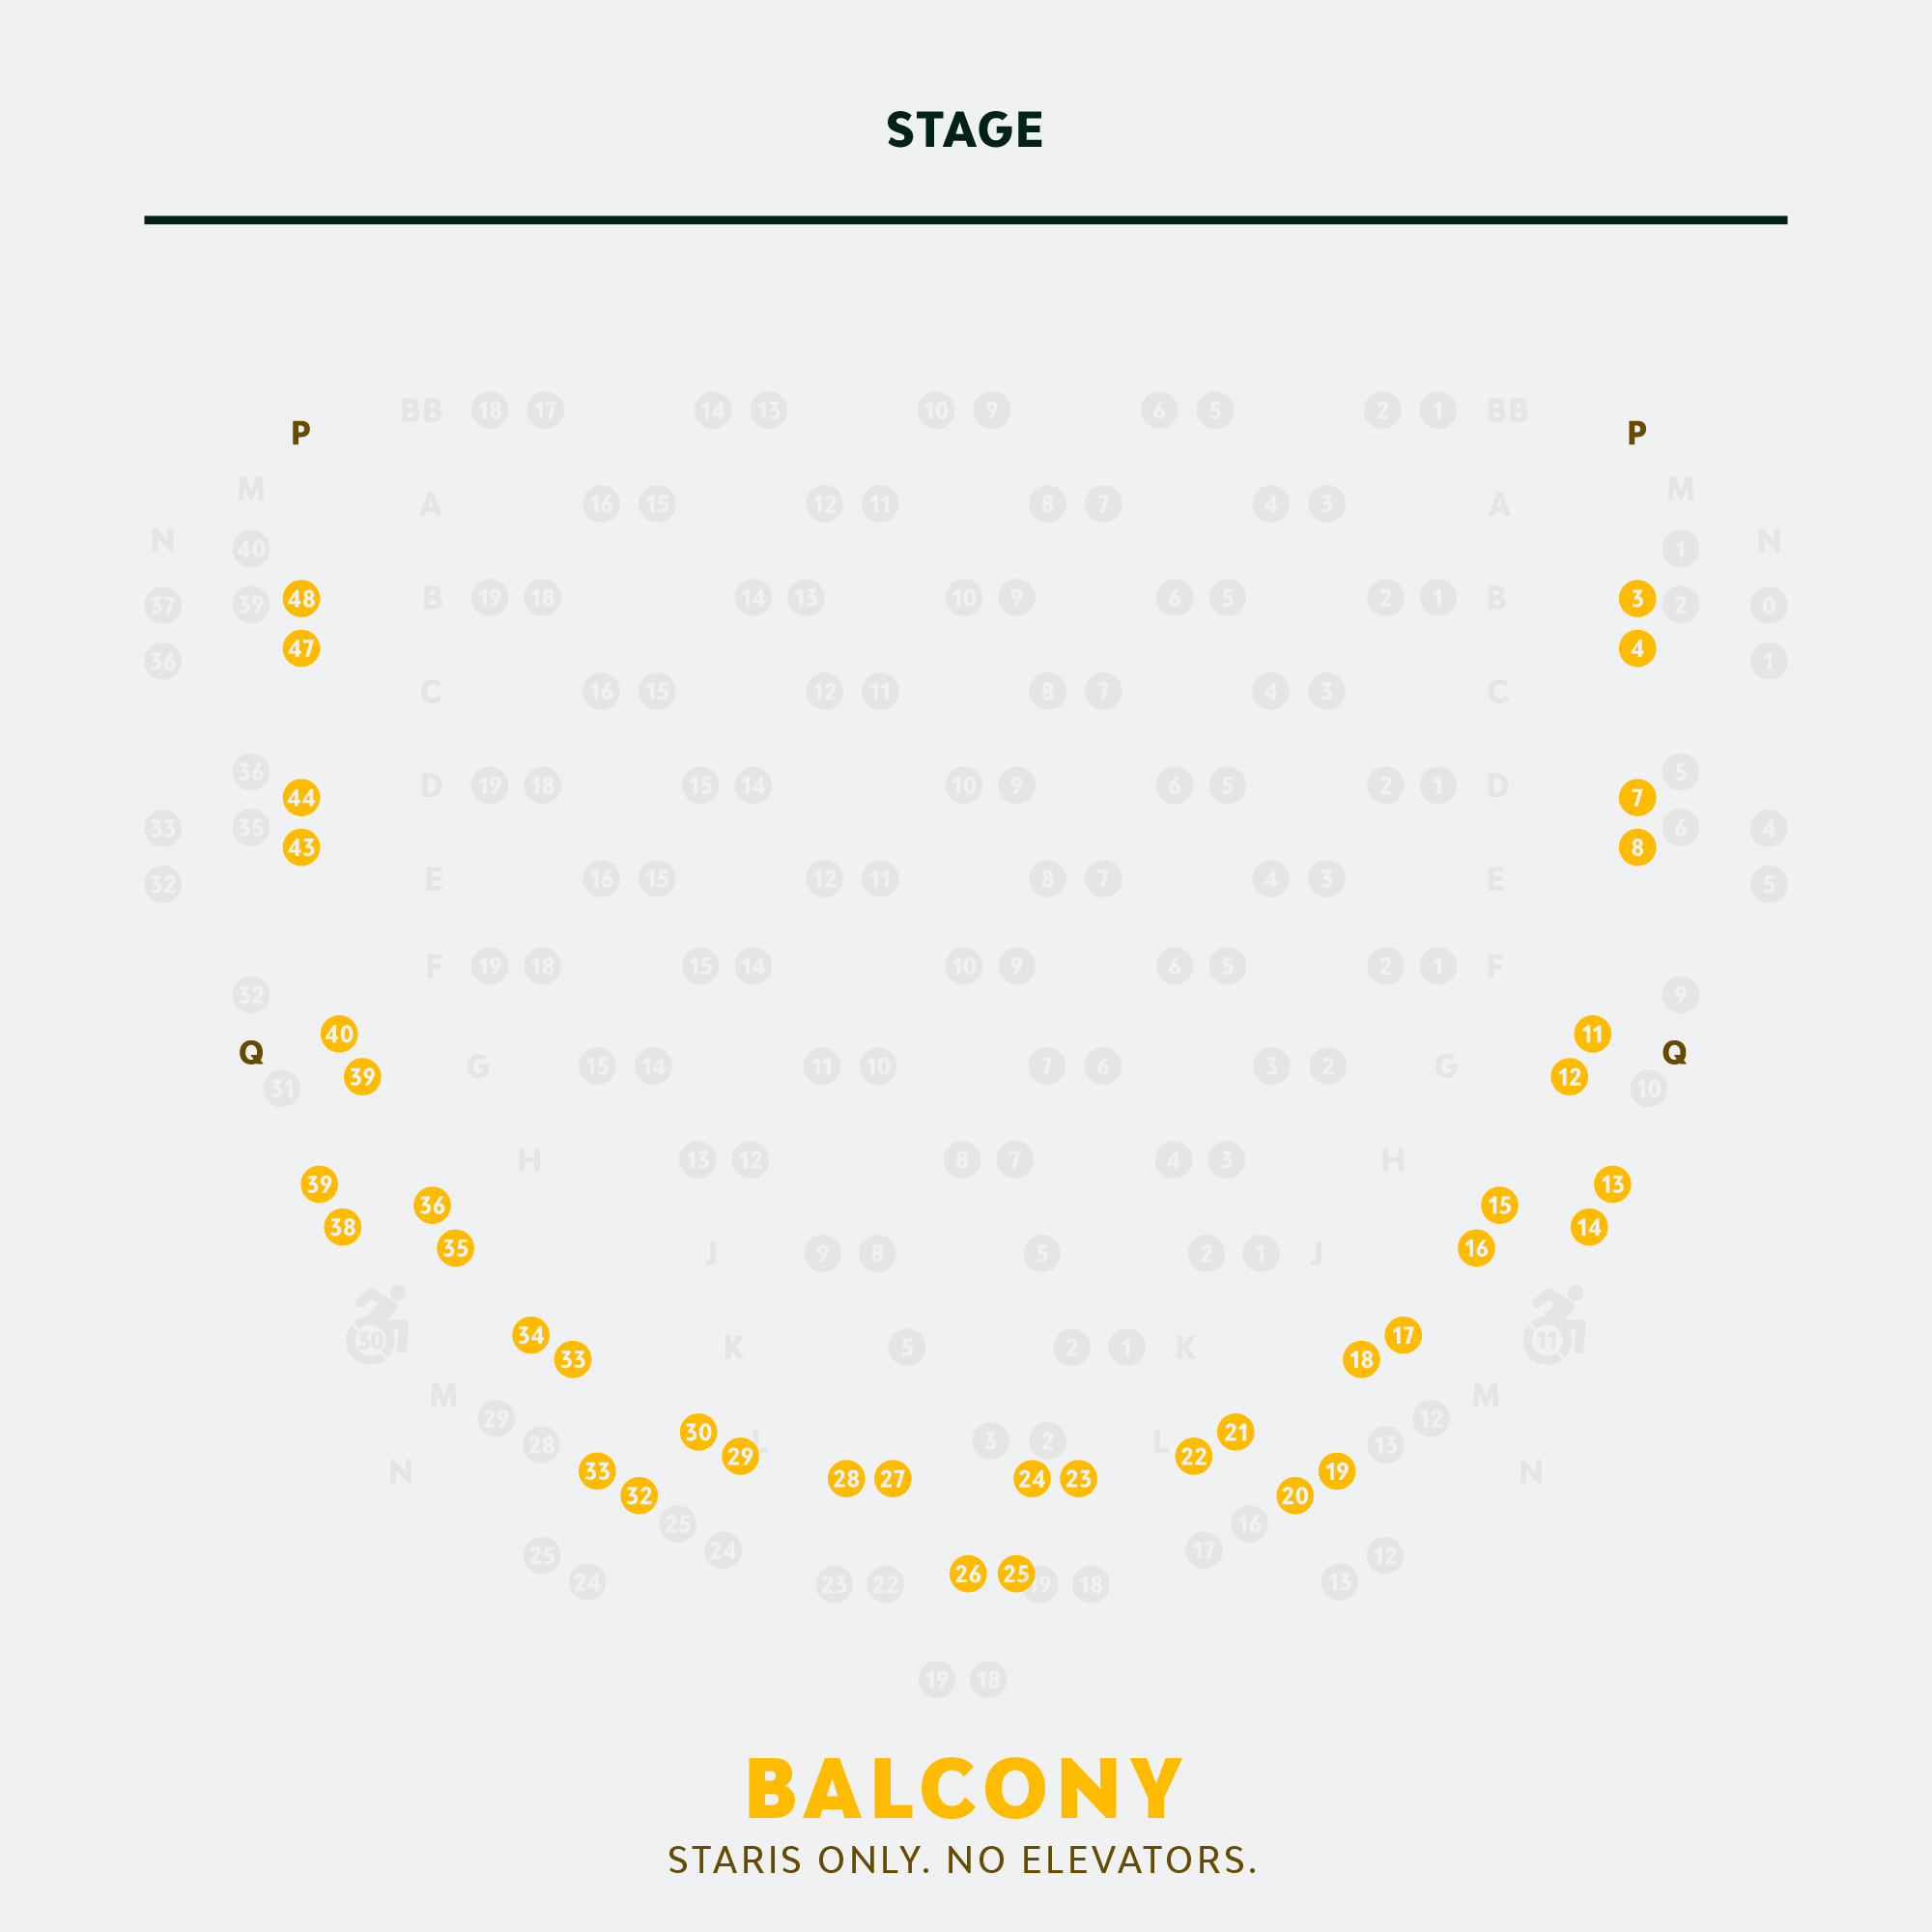 Physically Distanced Balcony Seating Chart